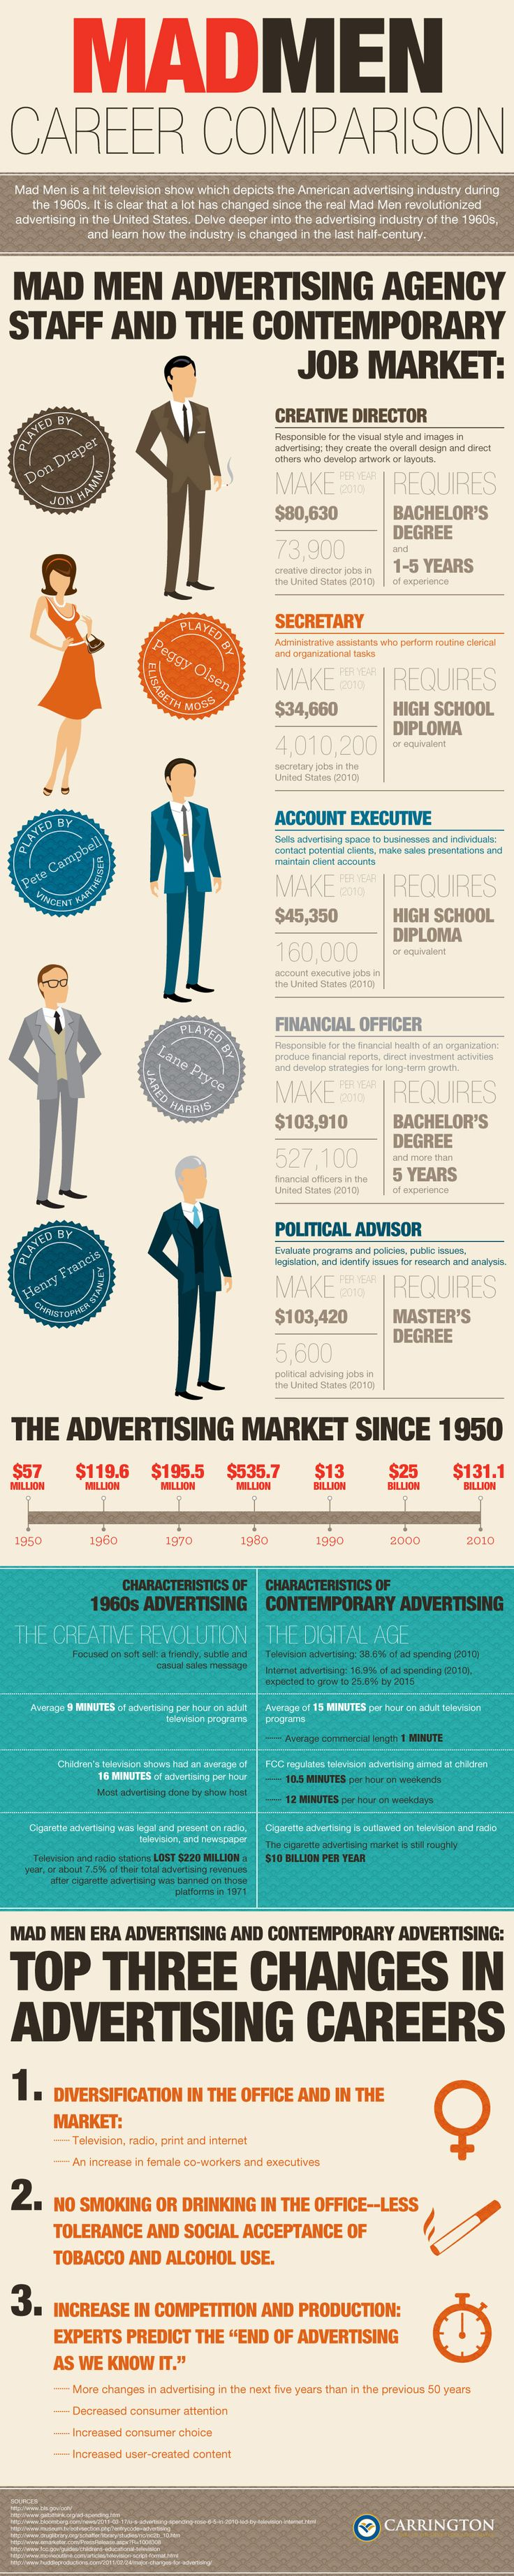 Mad Men: Career Comparison  [Infographic]